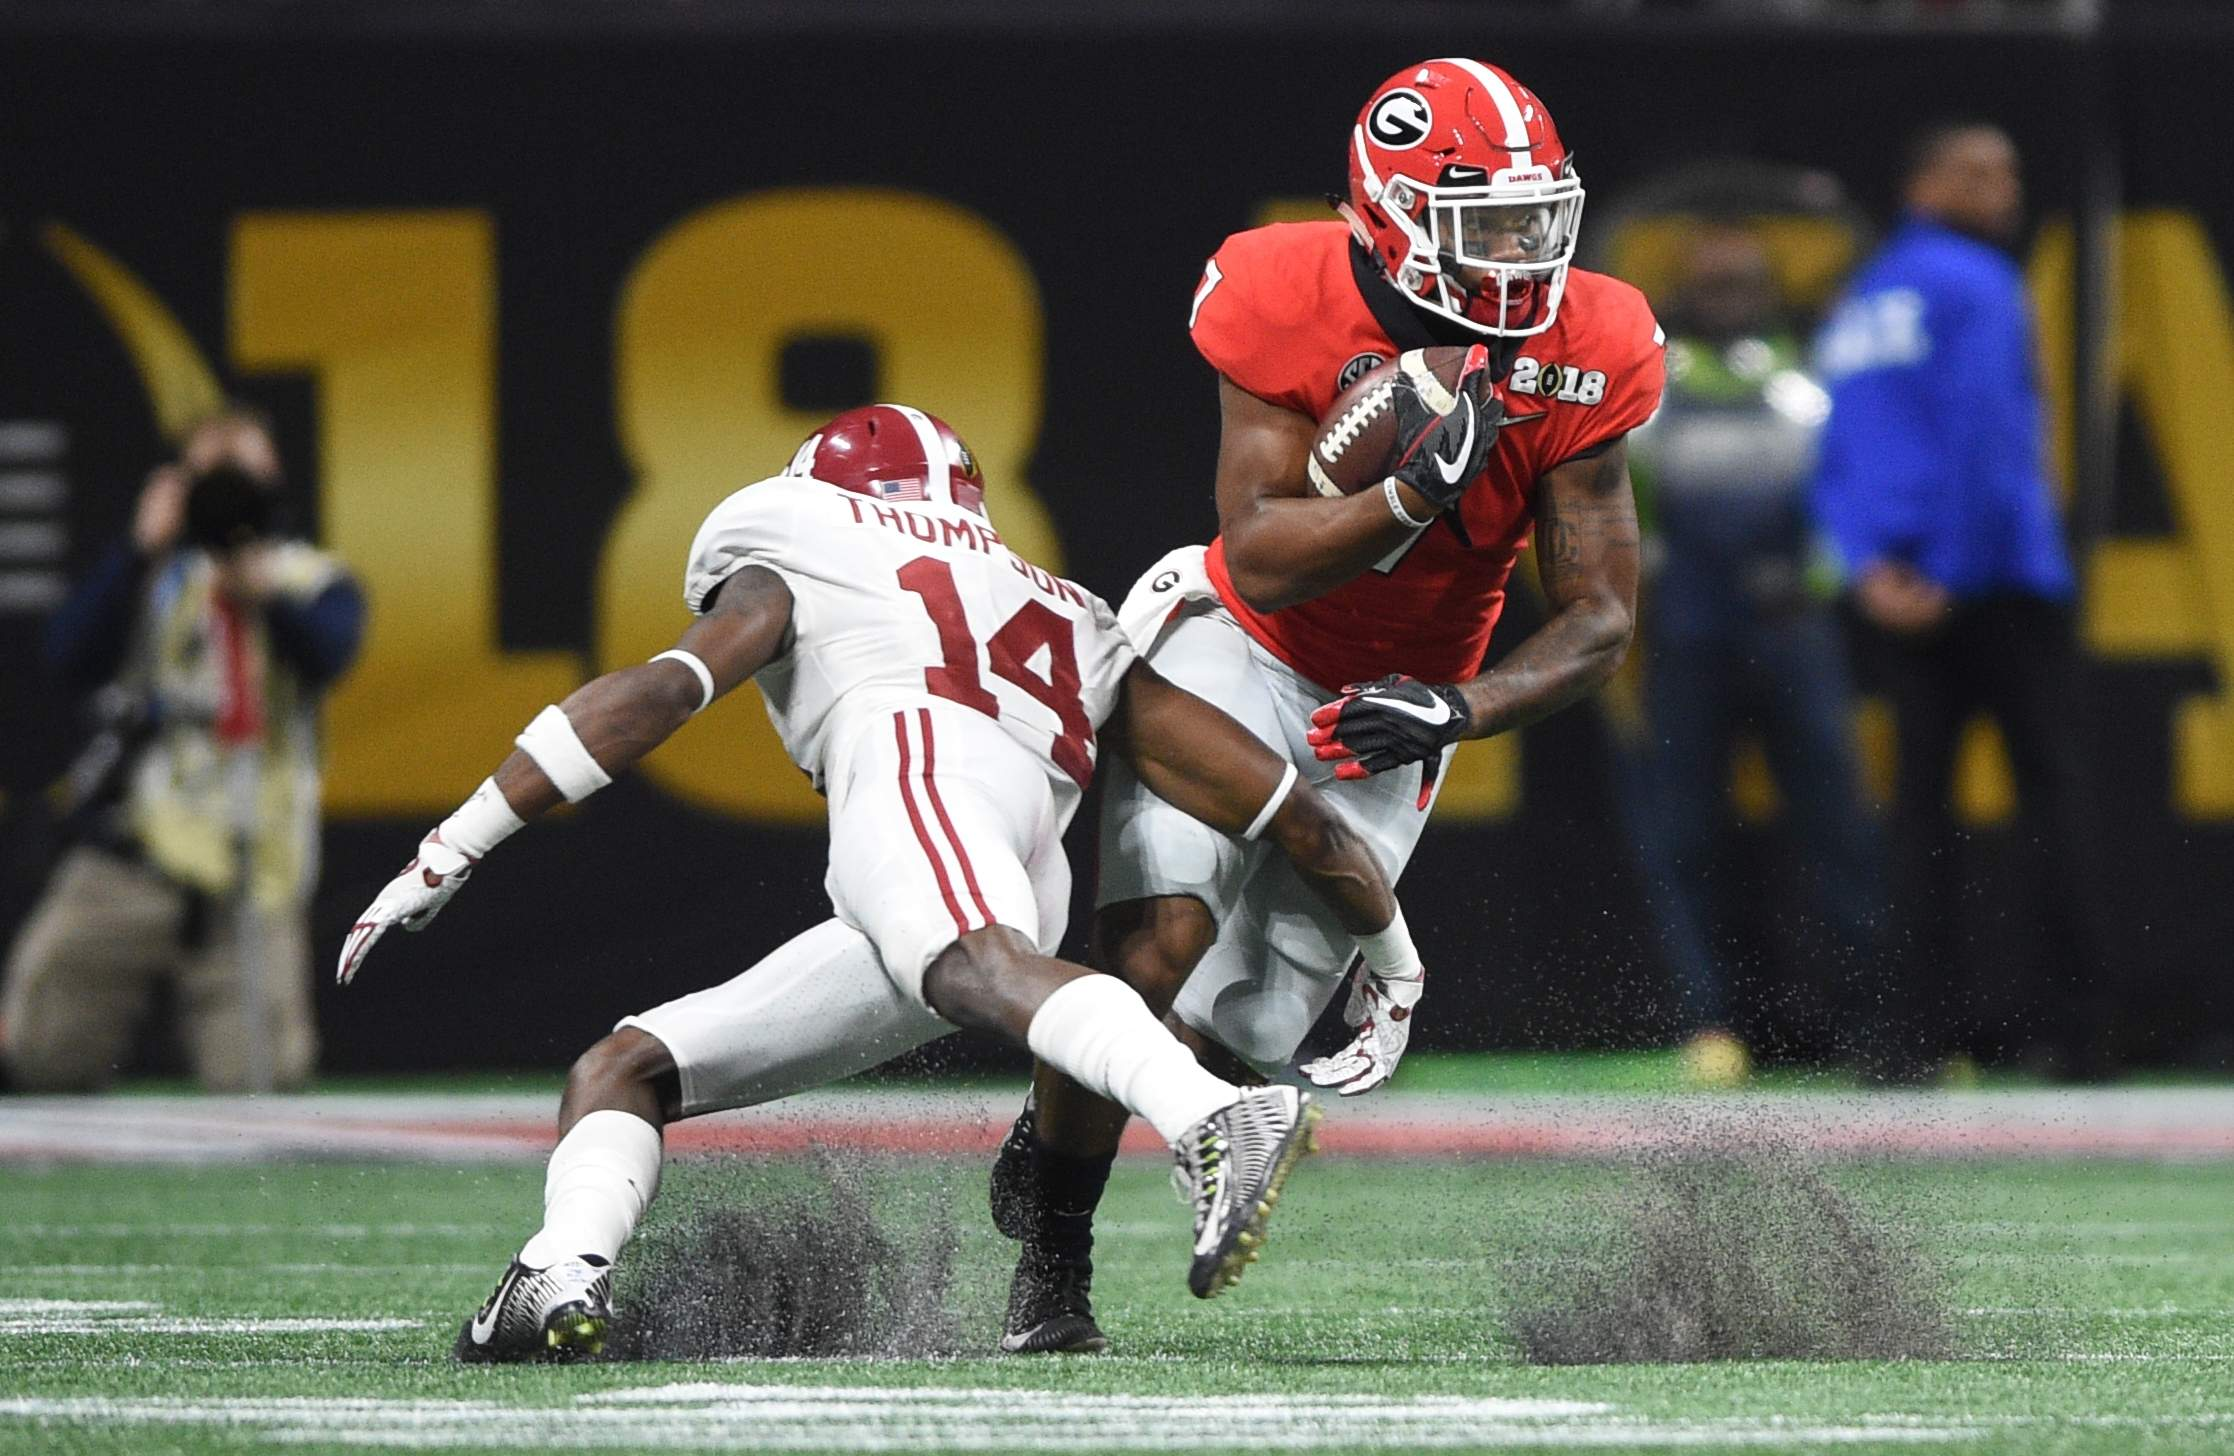 Alabama defender Deionte Thompson tries to get a grip on Georgia's Georgia's D'Andre Swift during the 2018 College Football Playoff National Championship at Mercedes-Benz Stadium in Atlanta, Ga., Monday evening January 8, 2018. MICHAEL HOLAHAN/AUGUSTA CHRONICLE